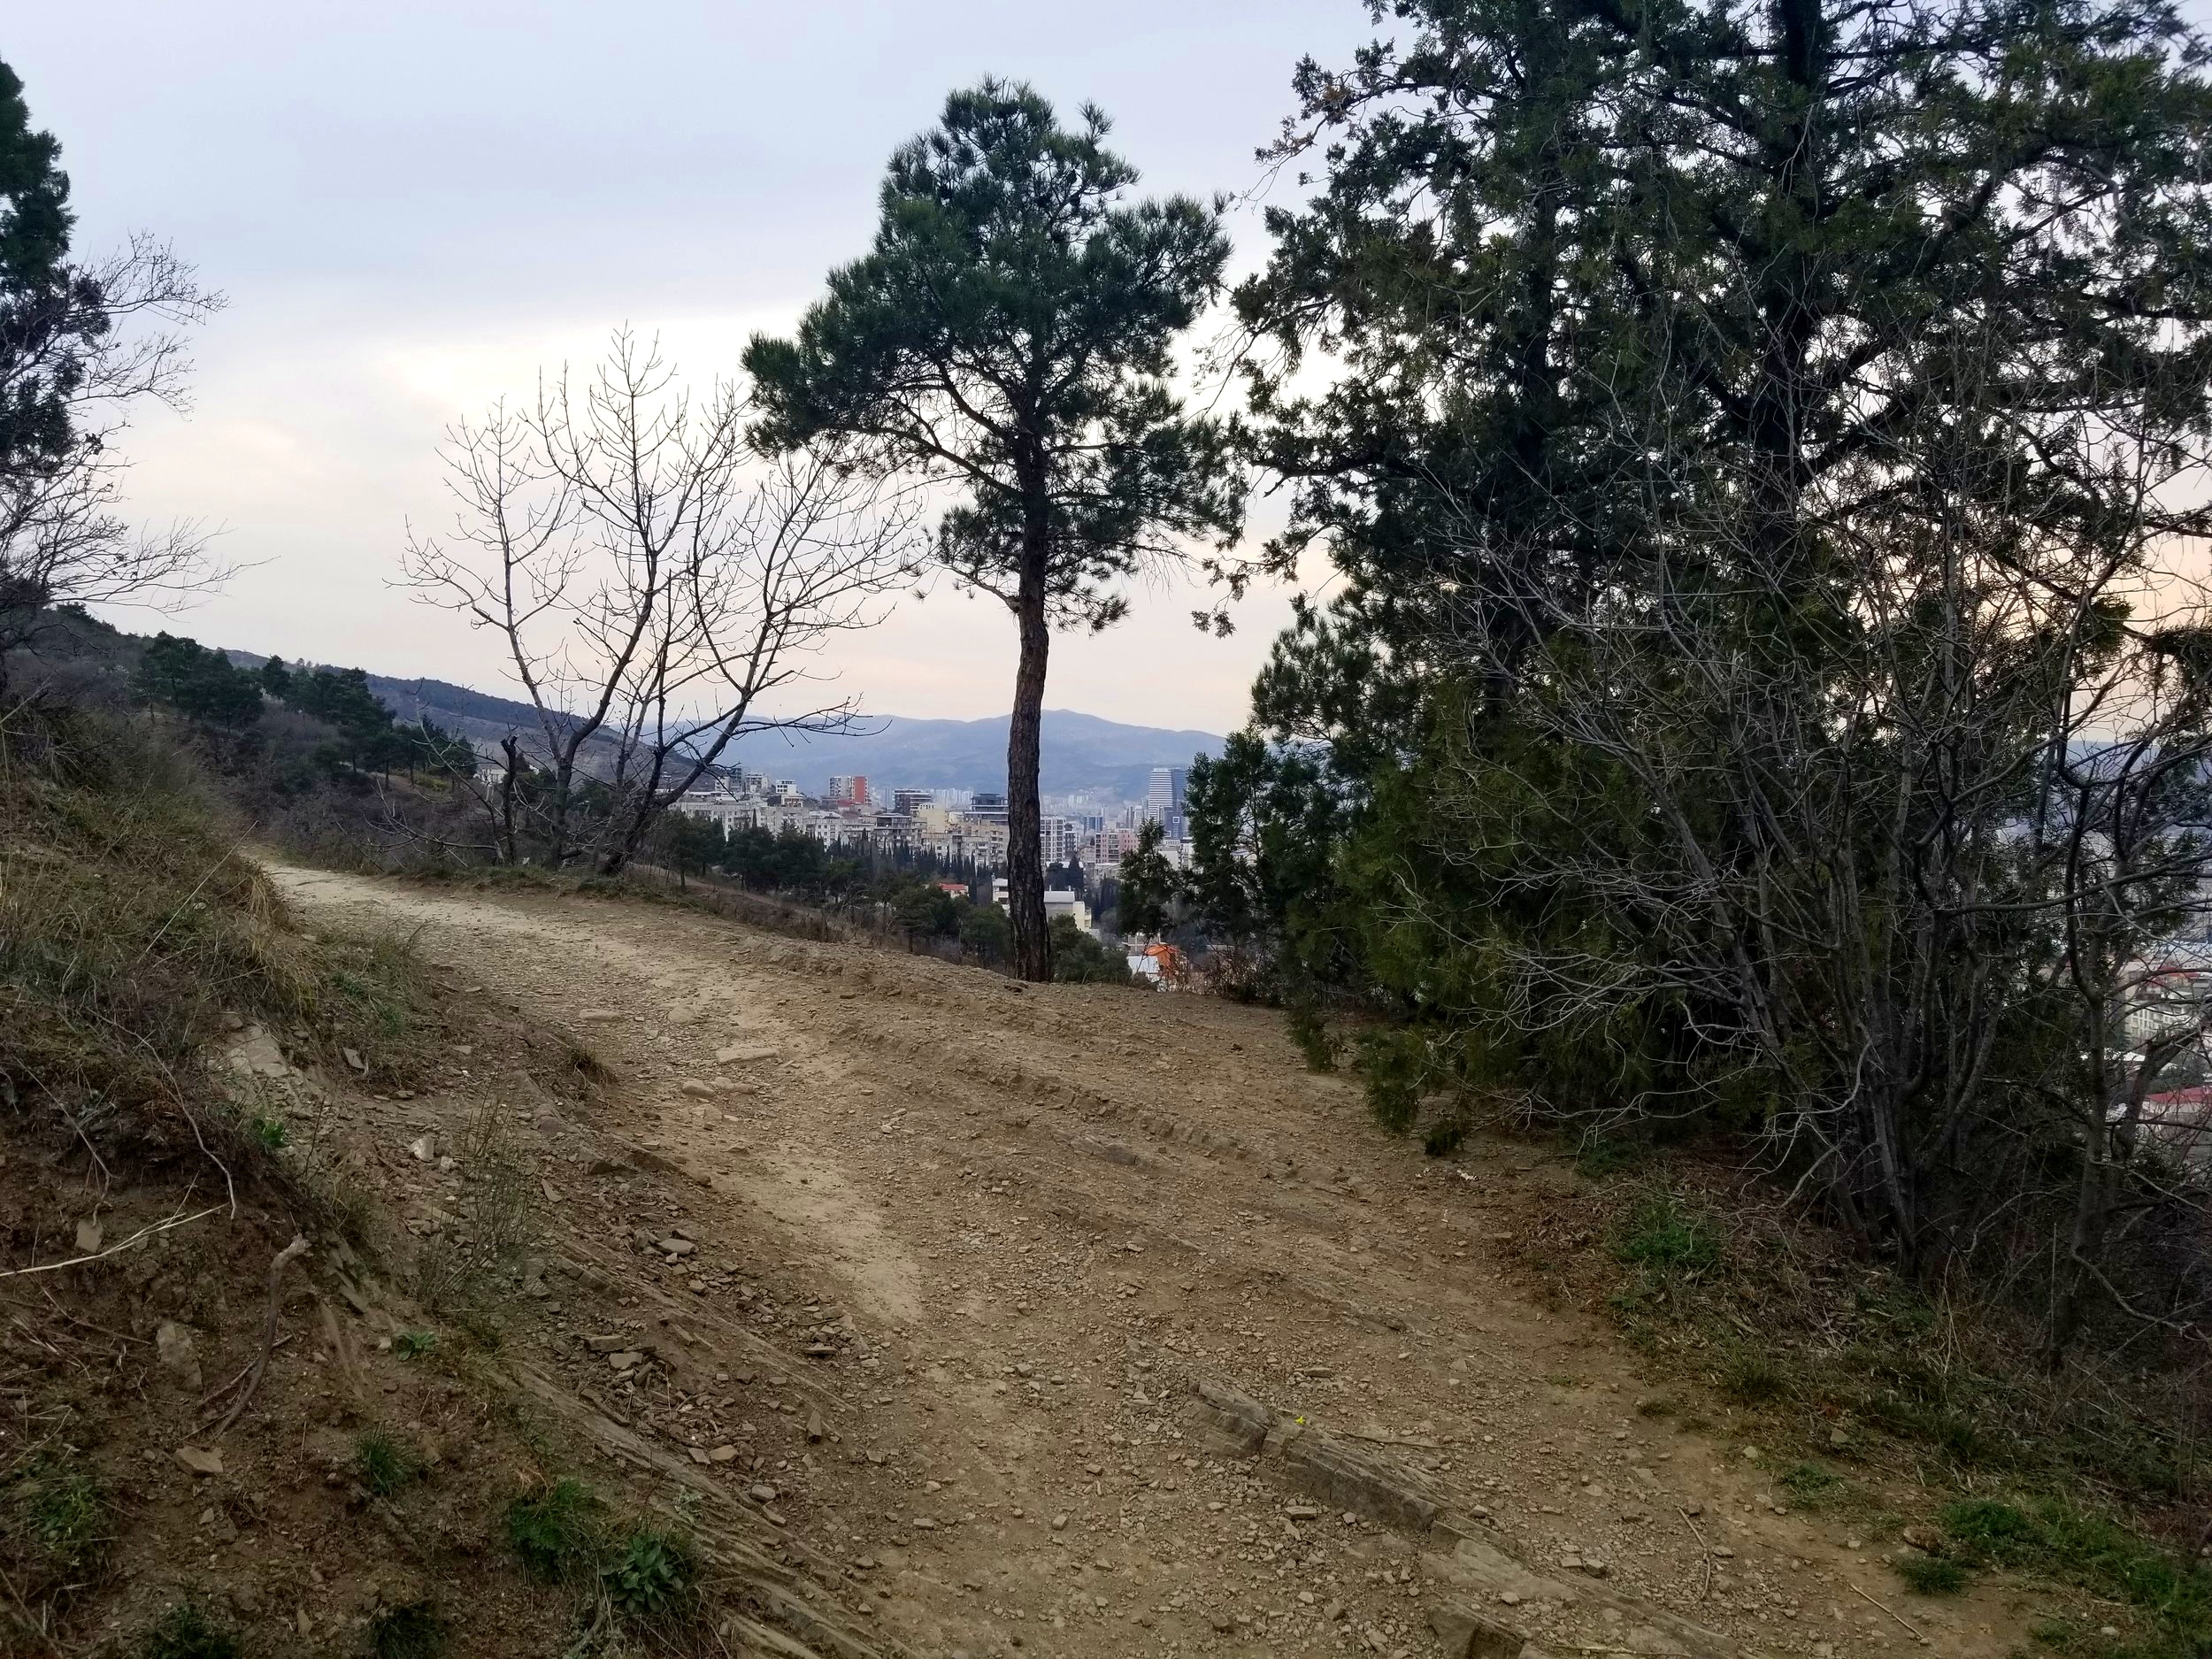 Hiking trail up to Tbilisi TV Tower